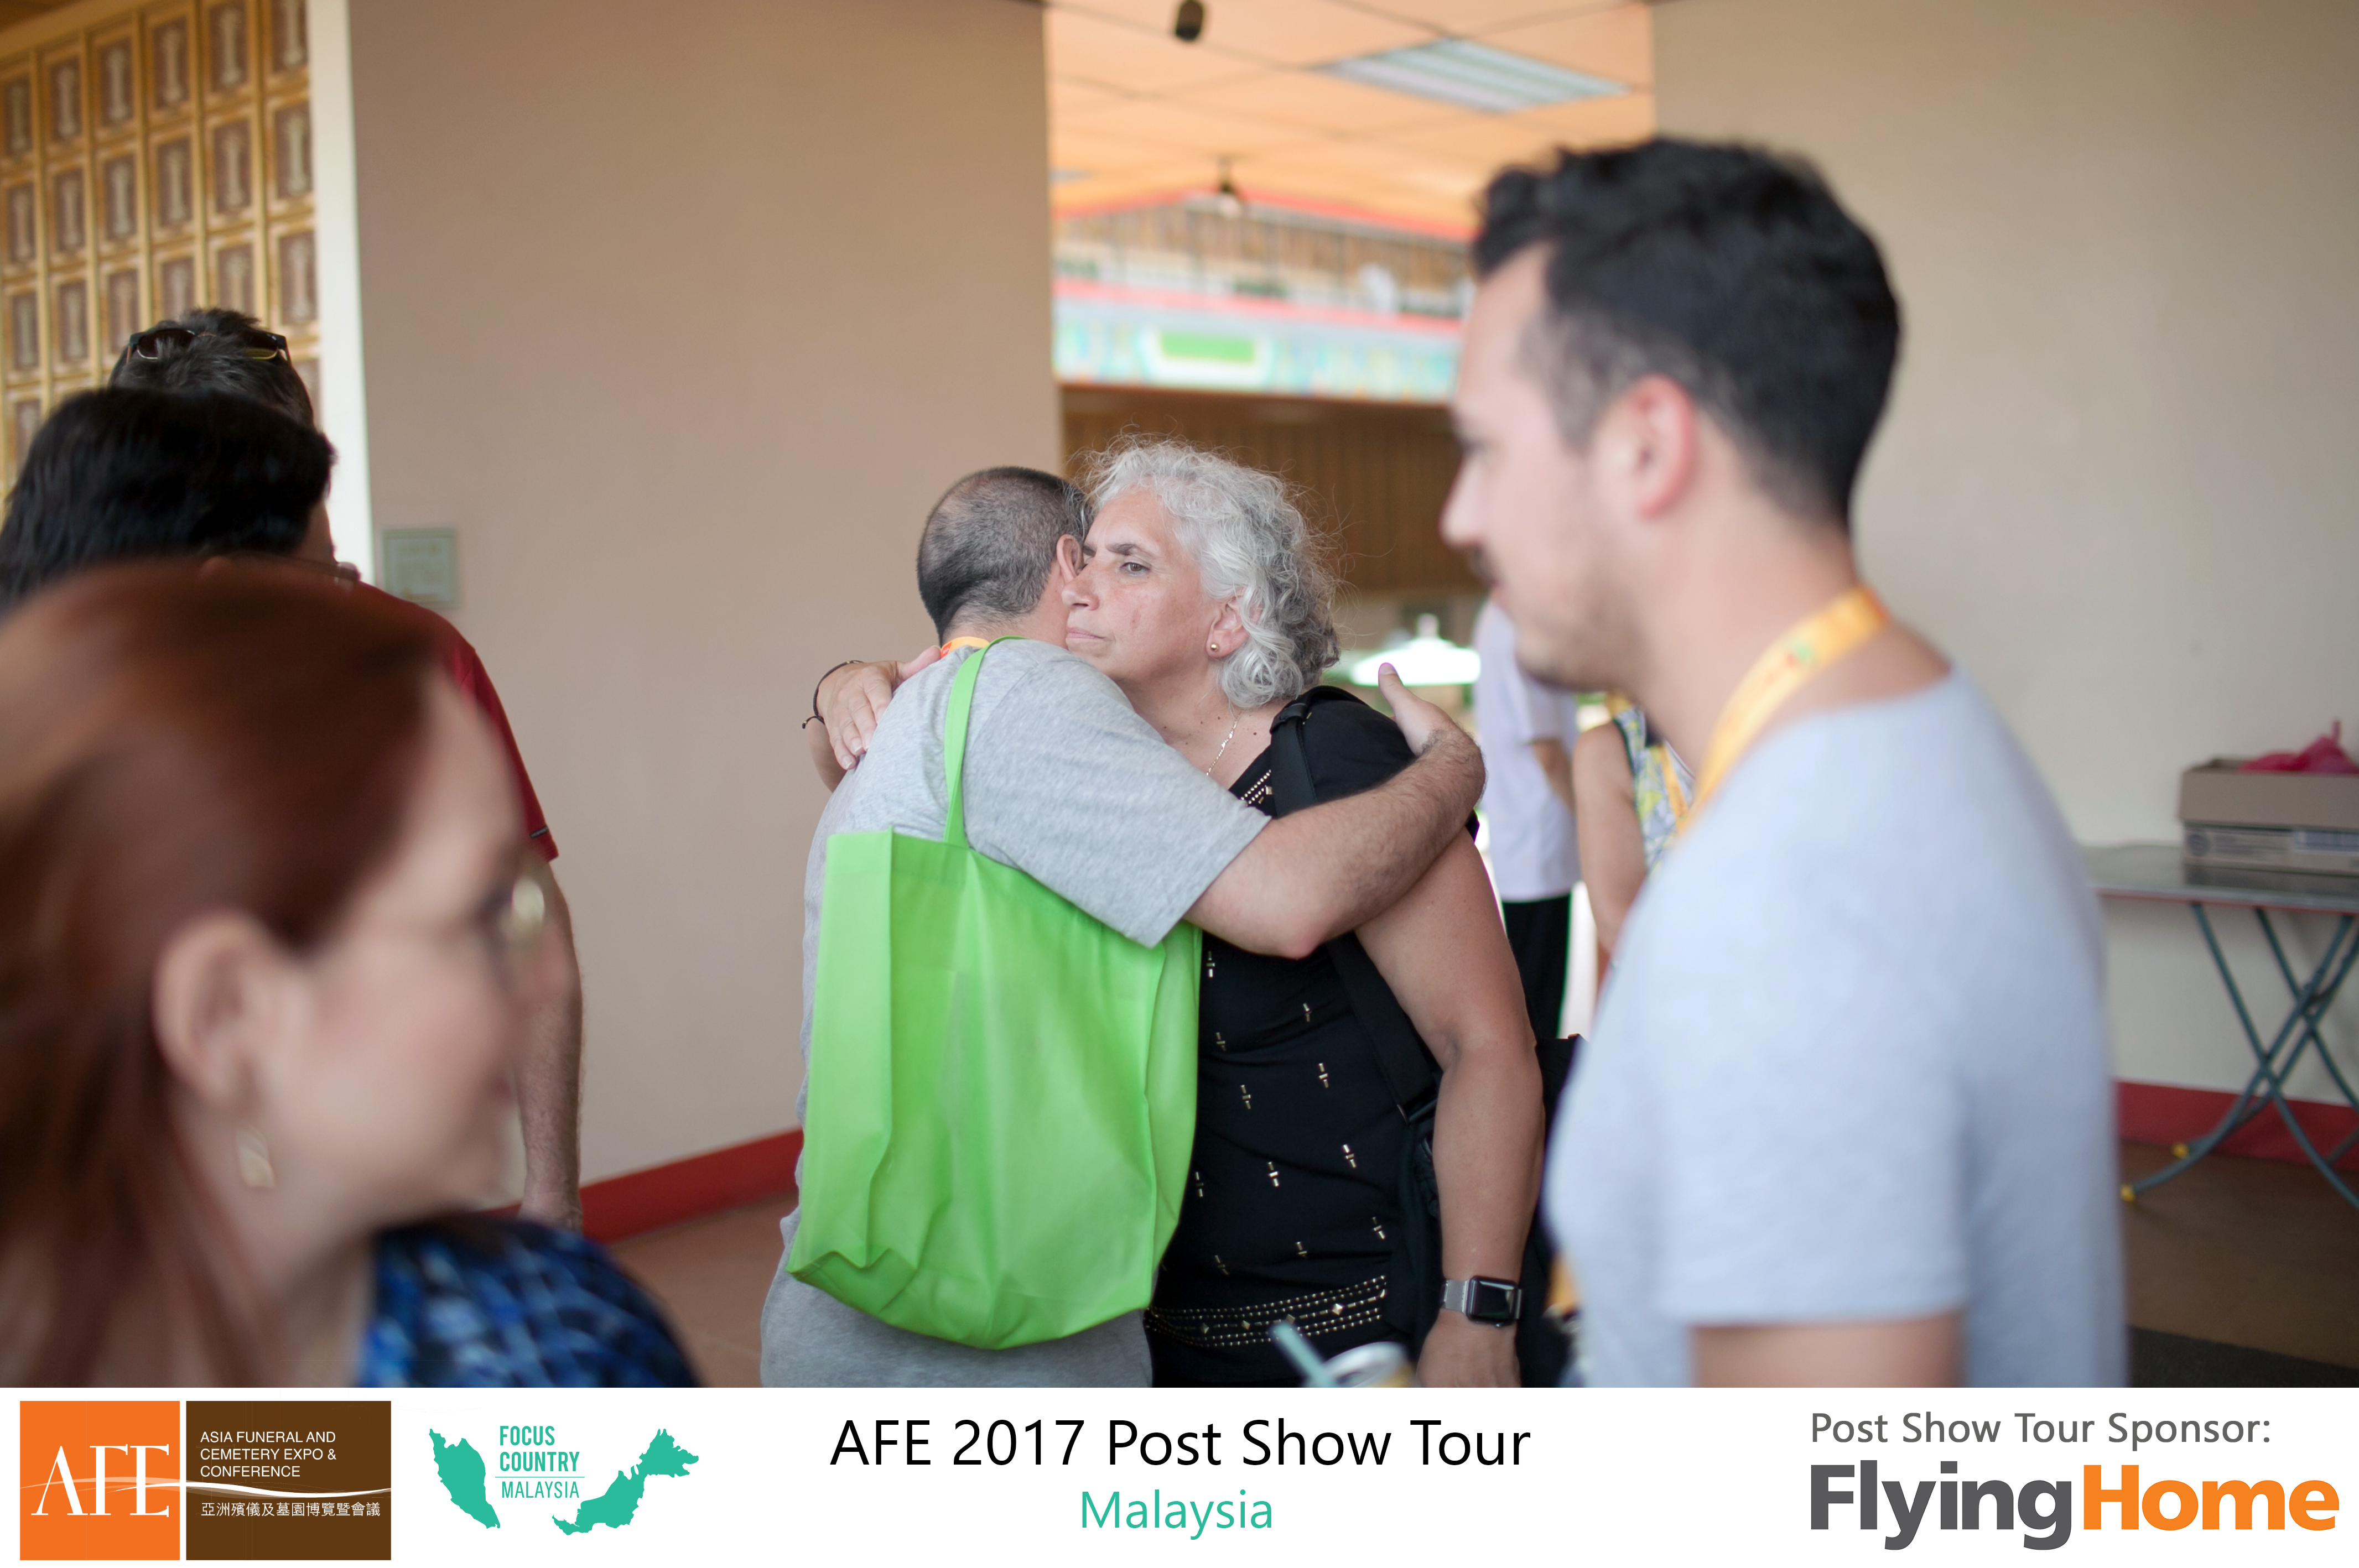 AFE Post Show Tour 2017 Day 4 - 13